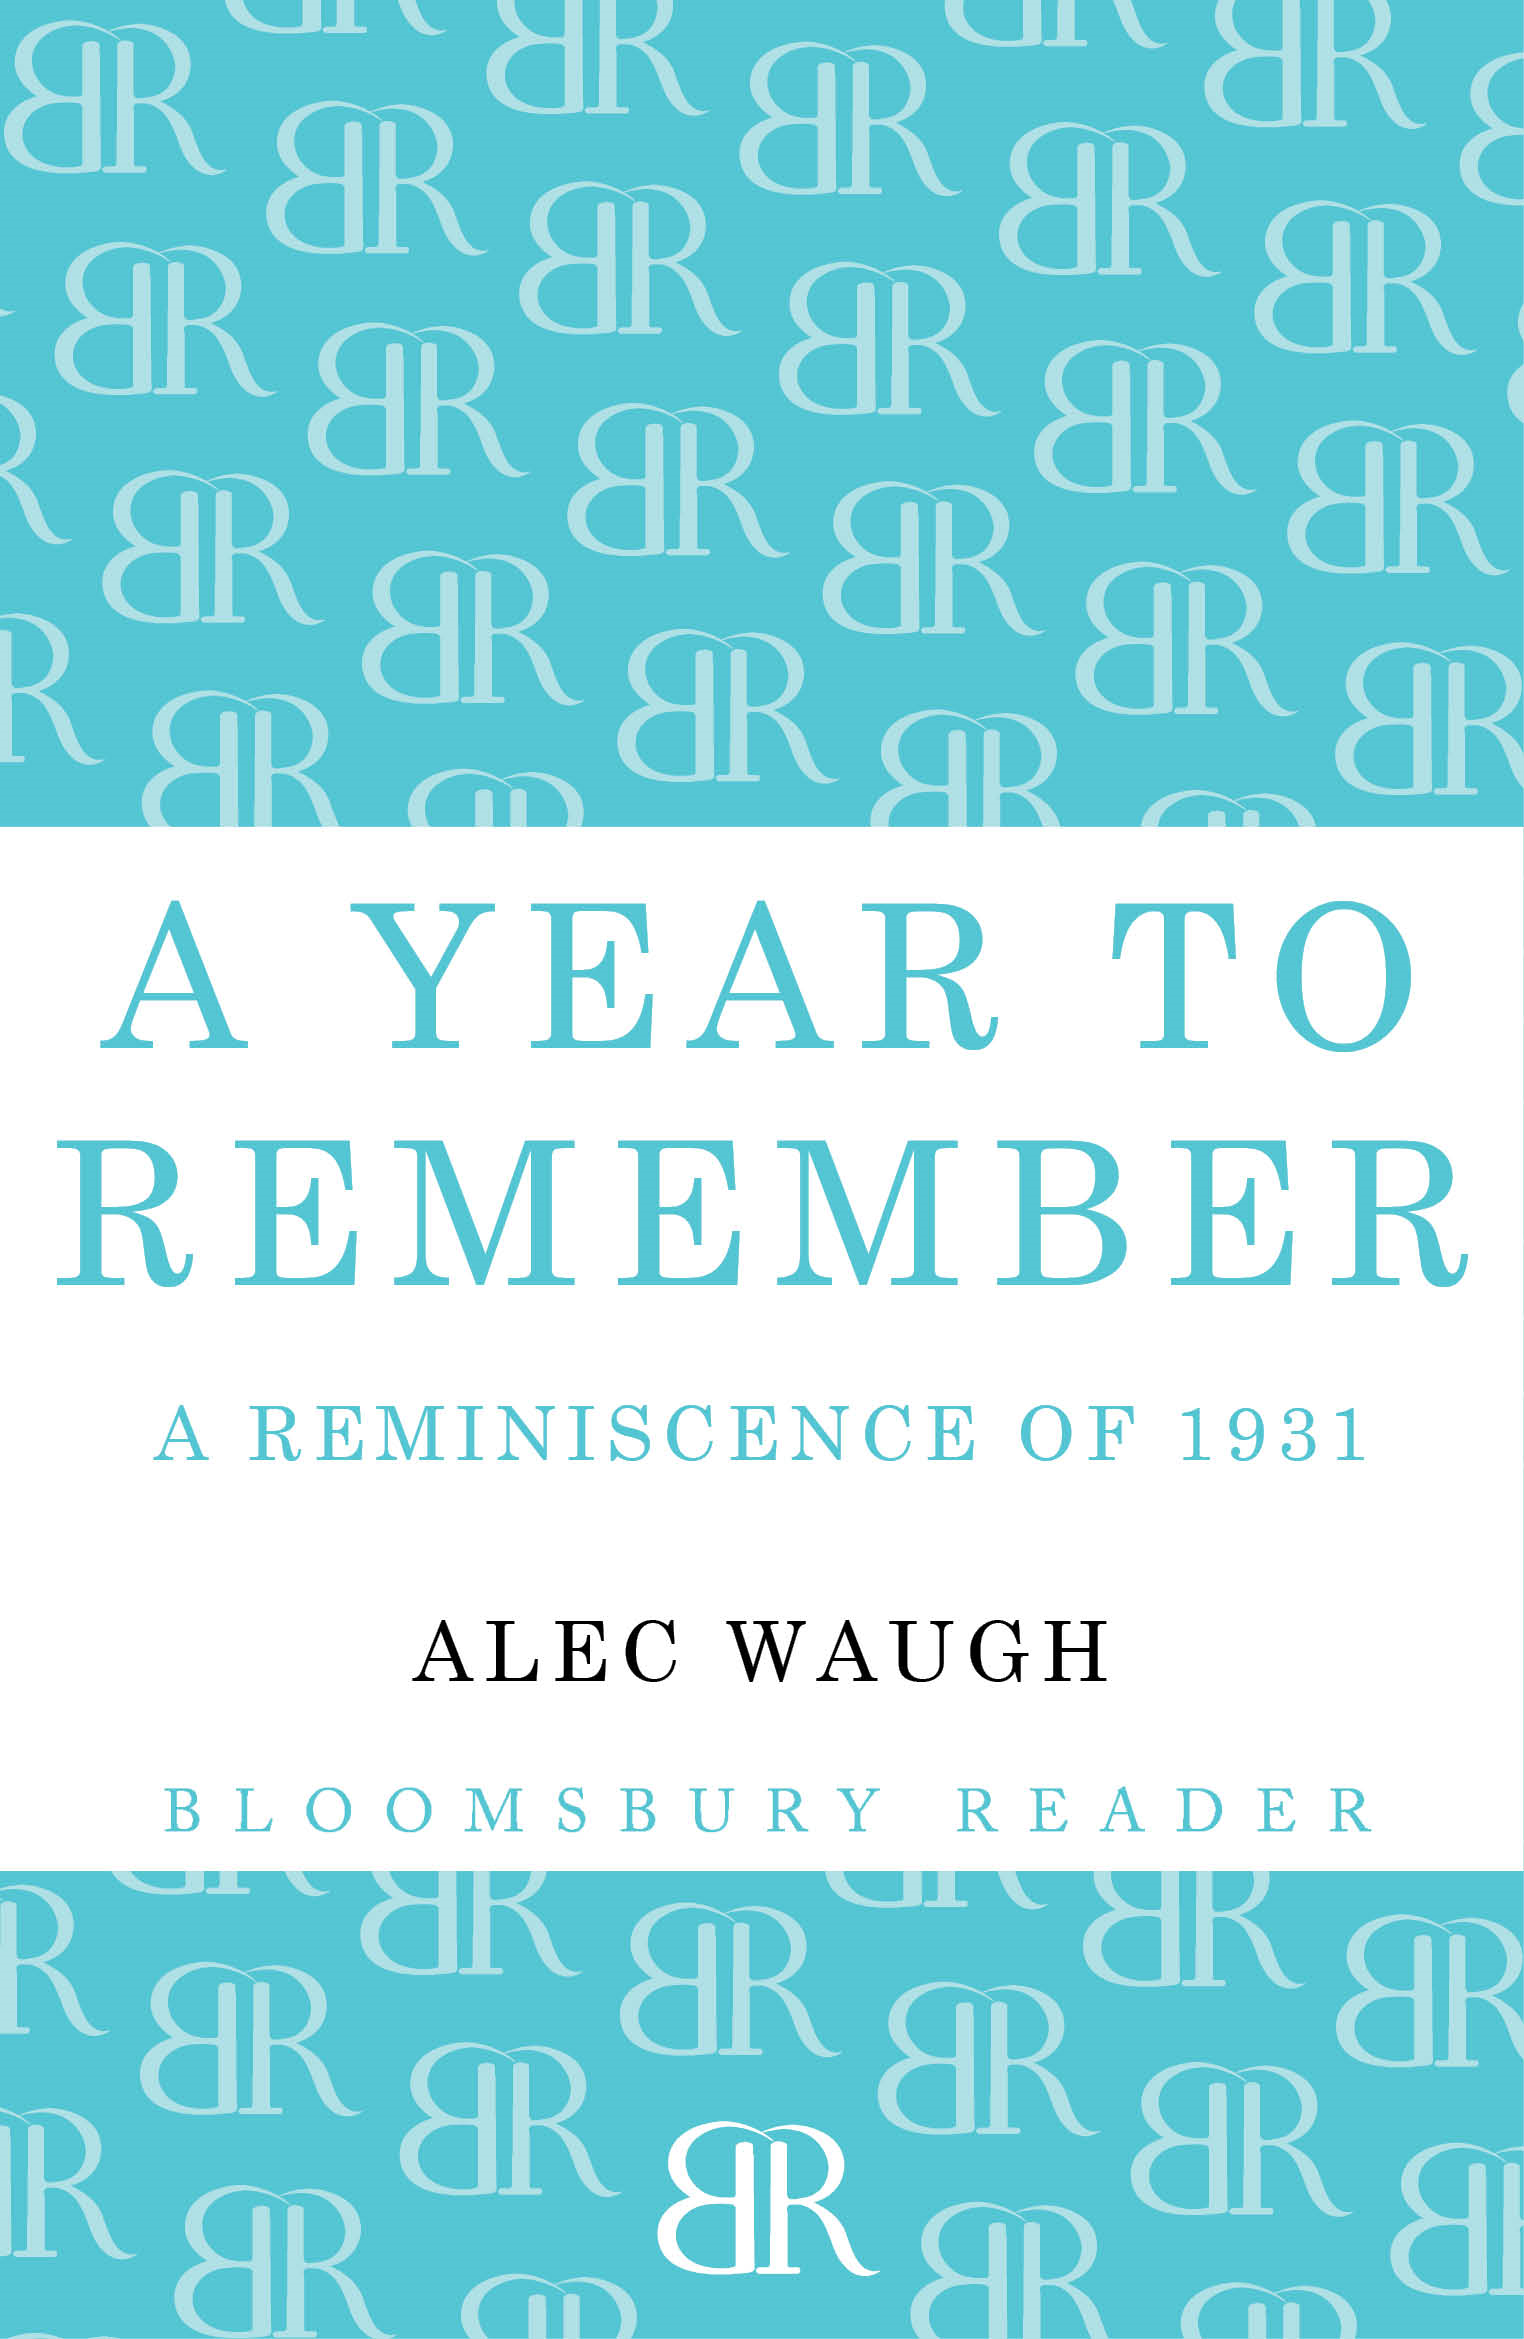 A Year to Remember: A Reminiscence of 1931